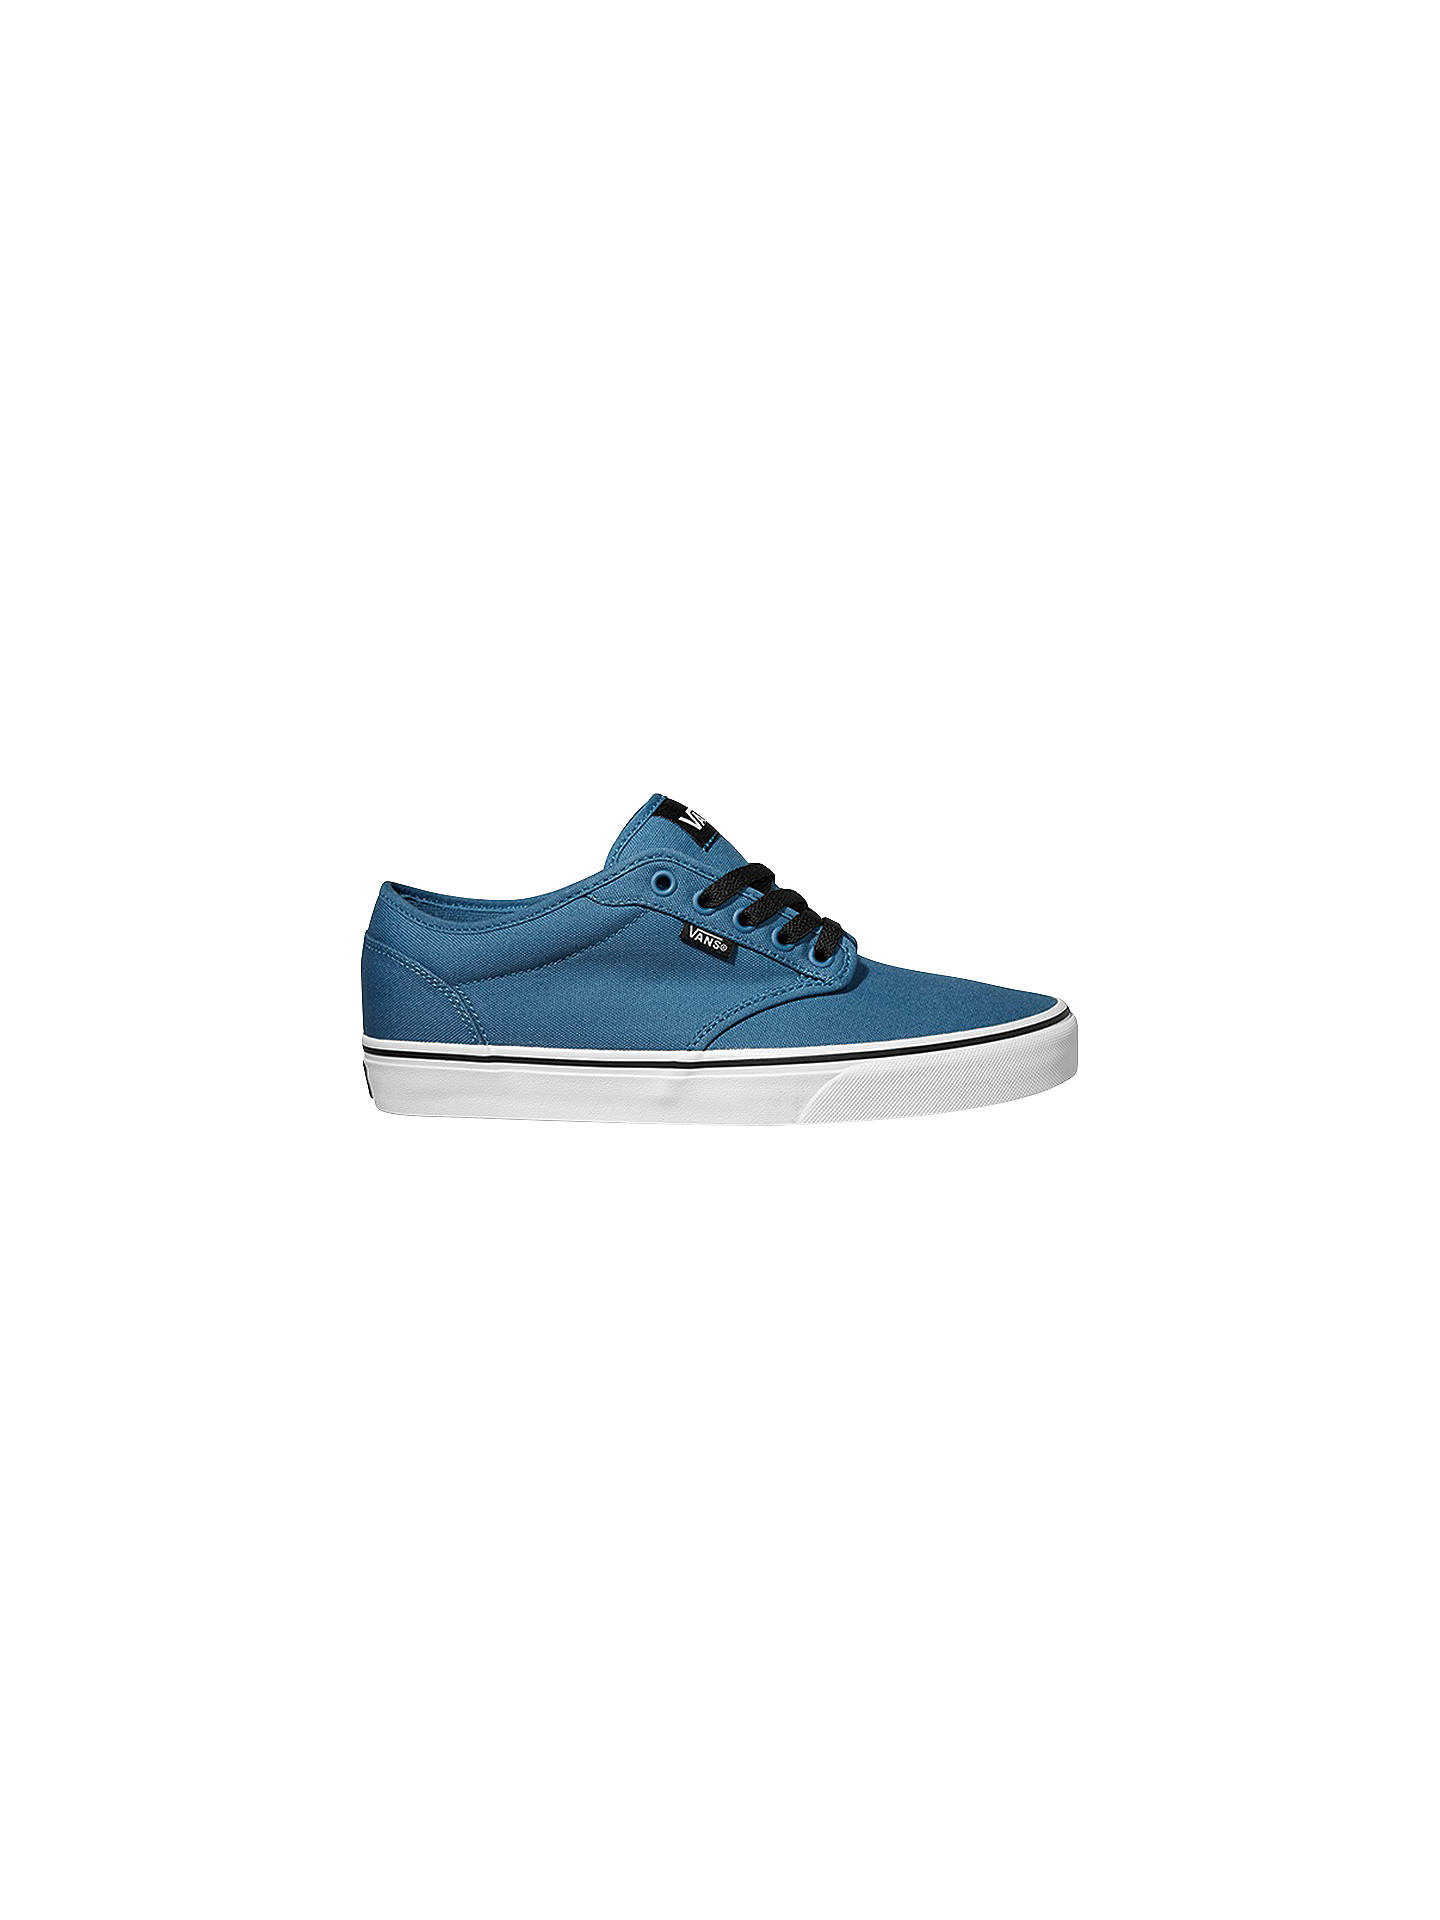 5e196c444460d1 Vans Atwood Canvas Trainers at John Lewis   Partners